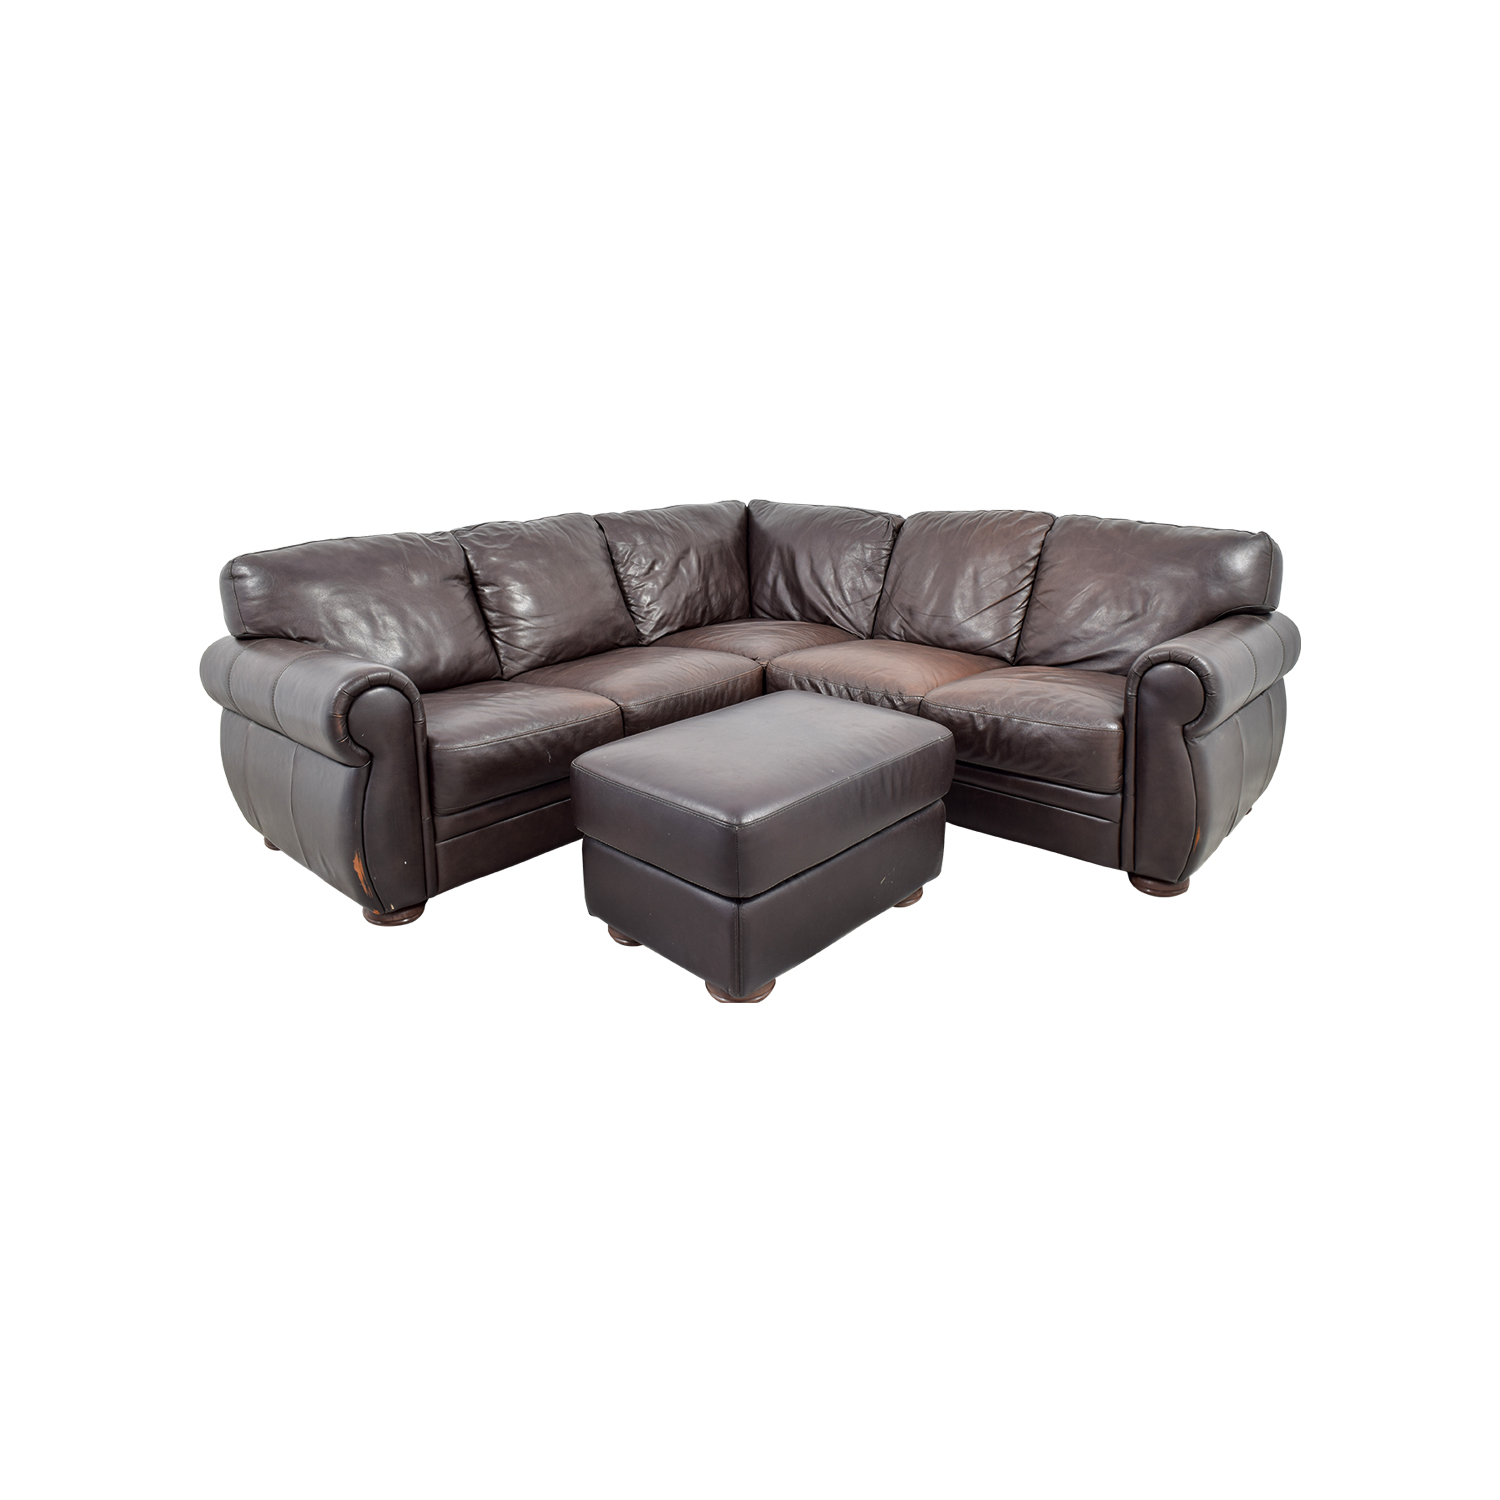 buy Chateau Dax Brown Leather Sectional with Ottoman Chateau Dax Sofas